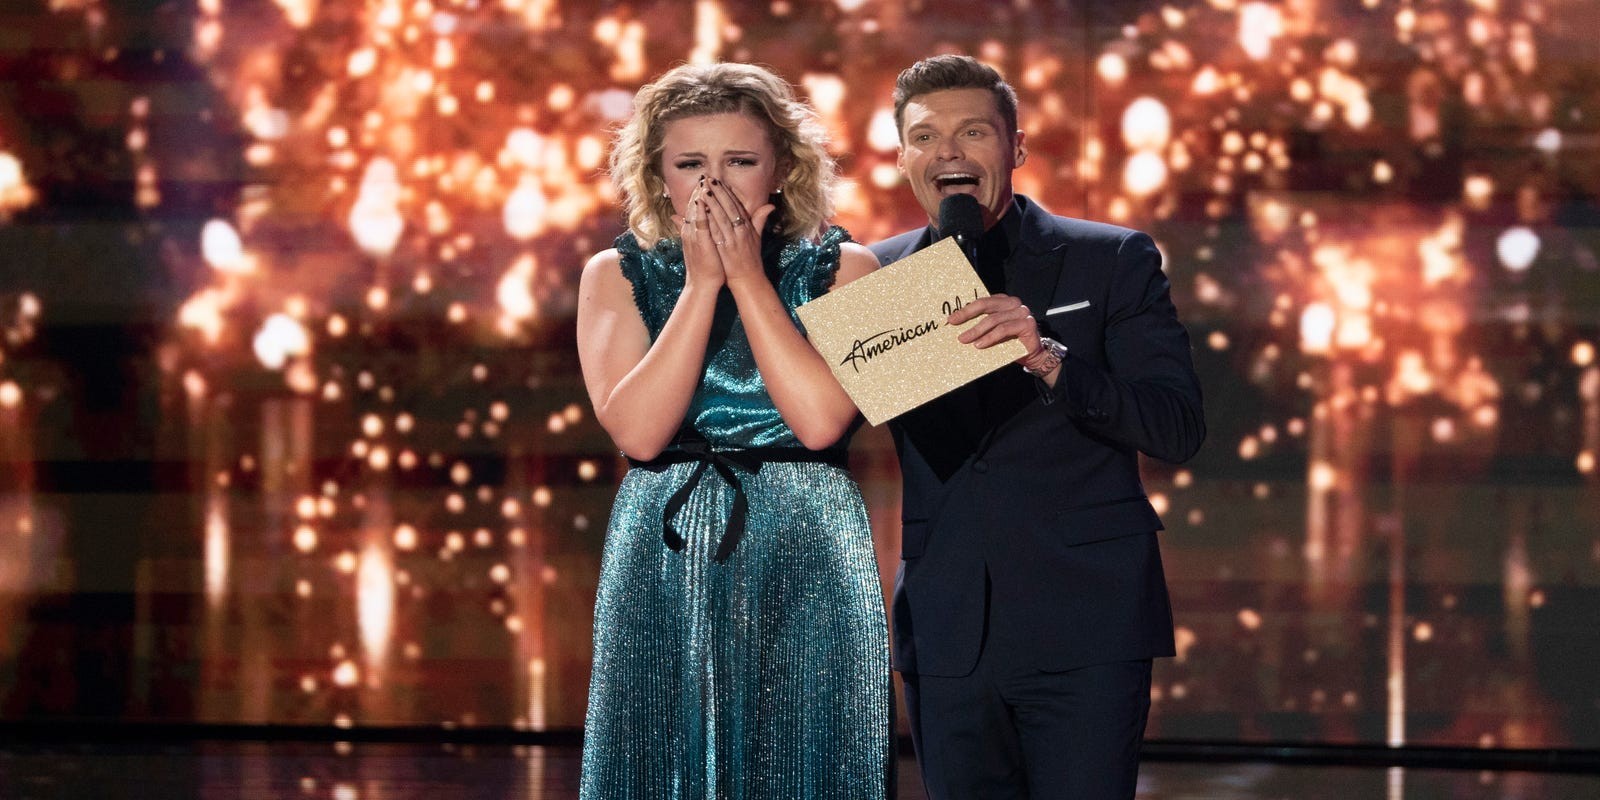 Maddie poppe and caleb hutchinson announce they are dating